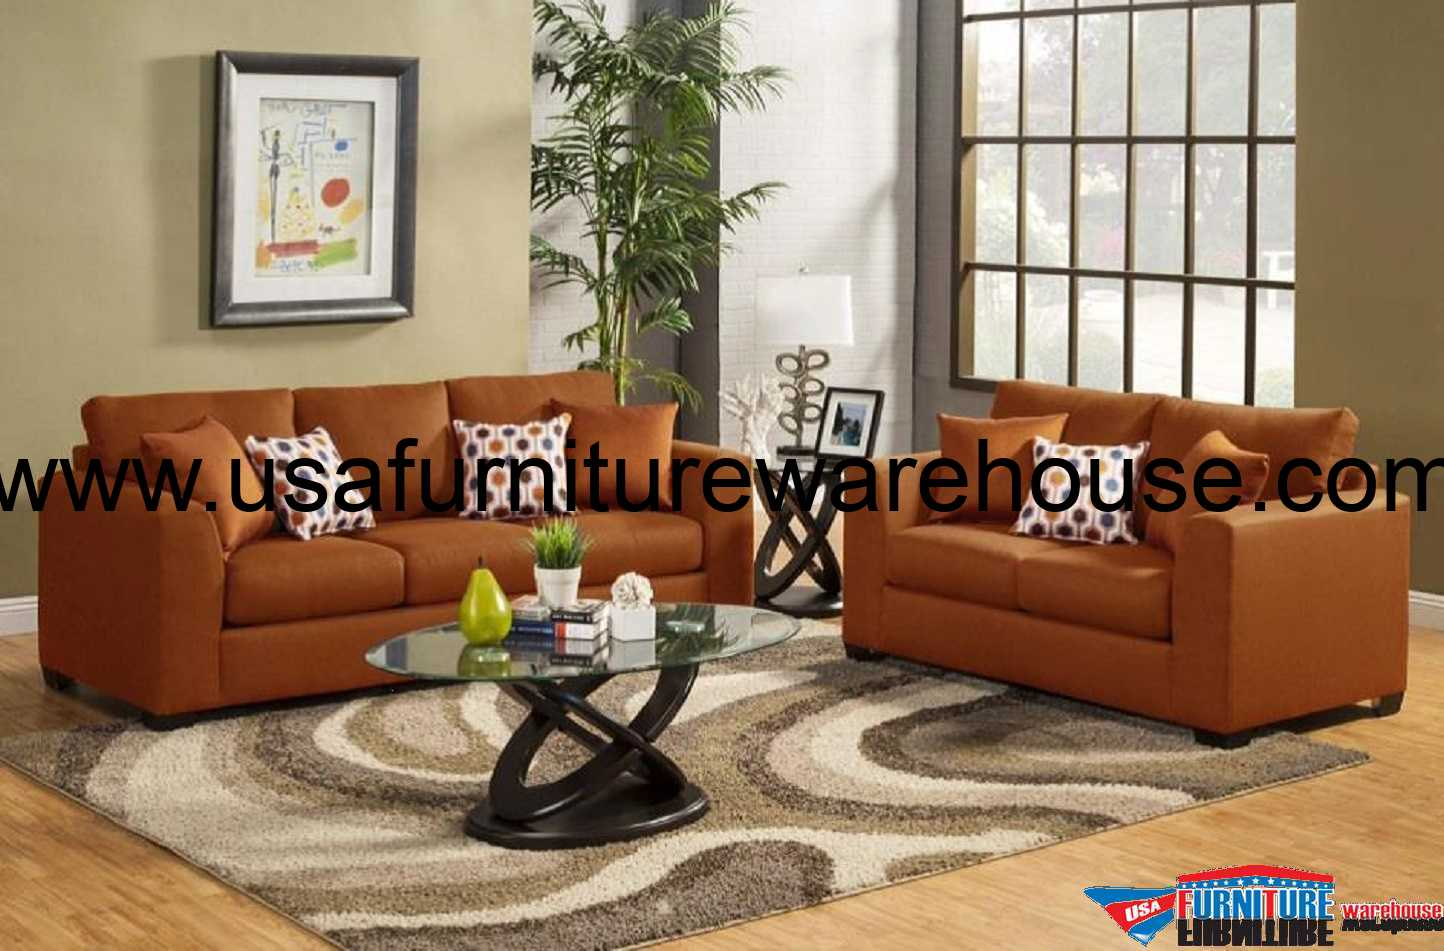 lucas beige orange leather sofa set classic english designs chenille ashley emelen 5 piece